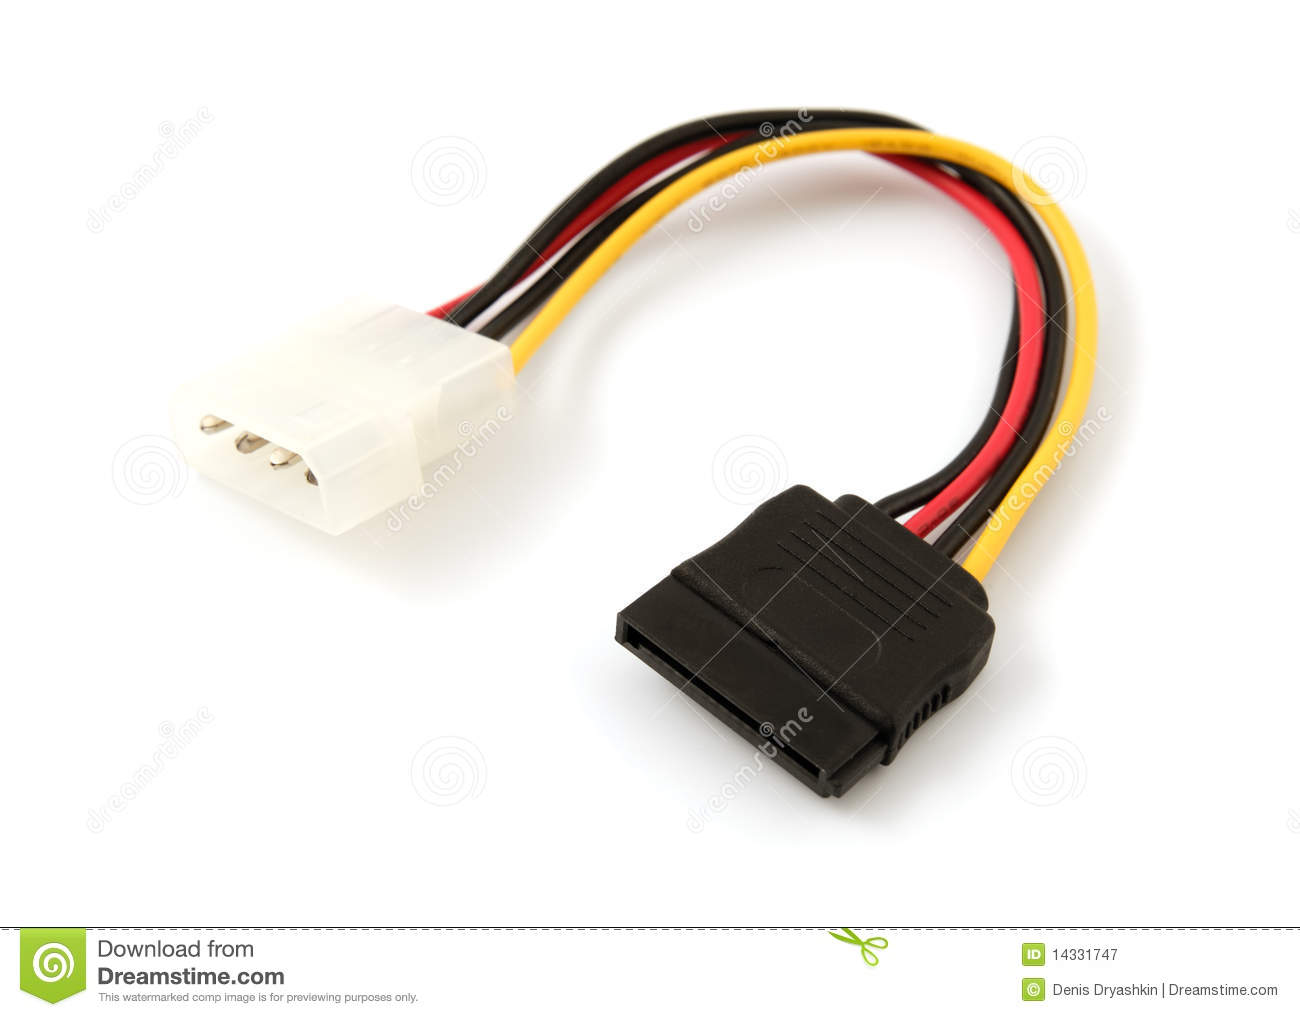 Wiring Harness Technology : Wire harness technology get free image about wiring diagram